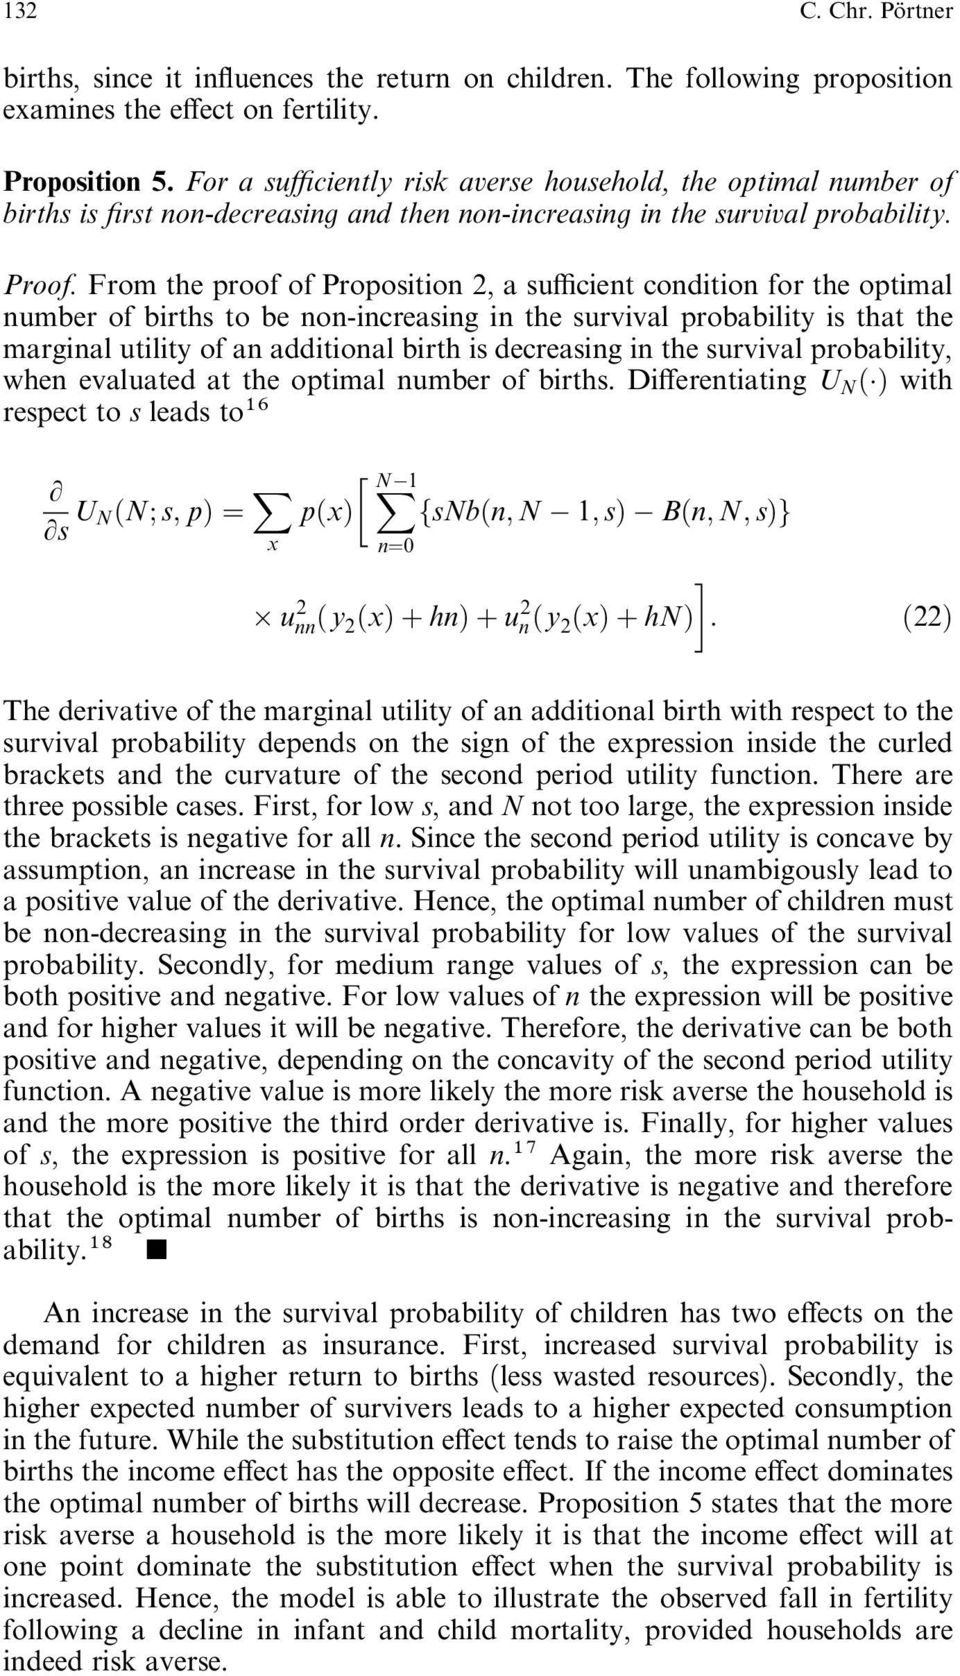 From te proof of Proposition 2, asu½cient condition for te optimal number of birts to be non-increasing in te survival probability is tat te marginal utility of an additional birt is decreasing in te